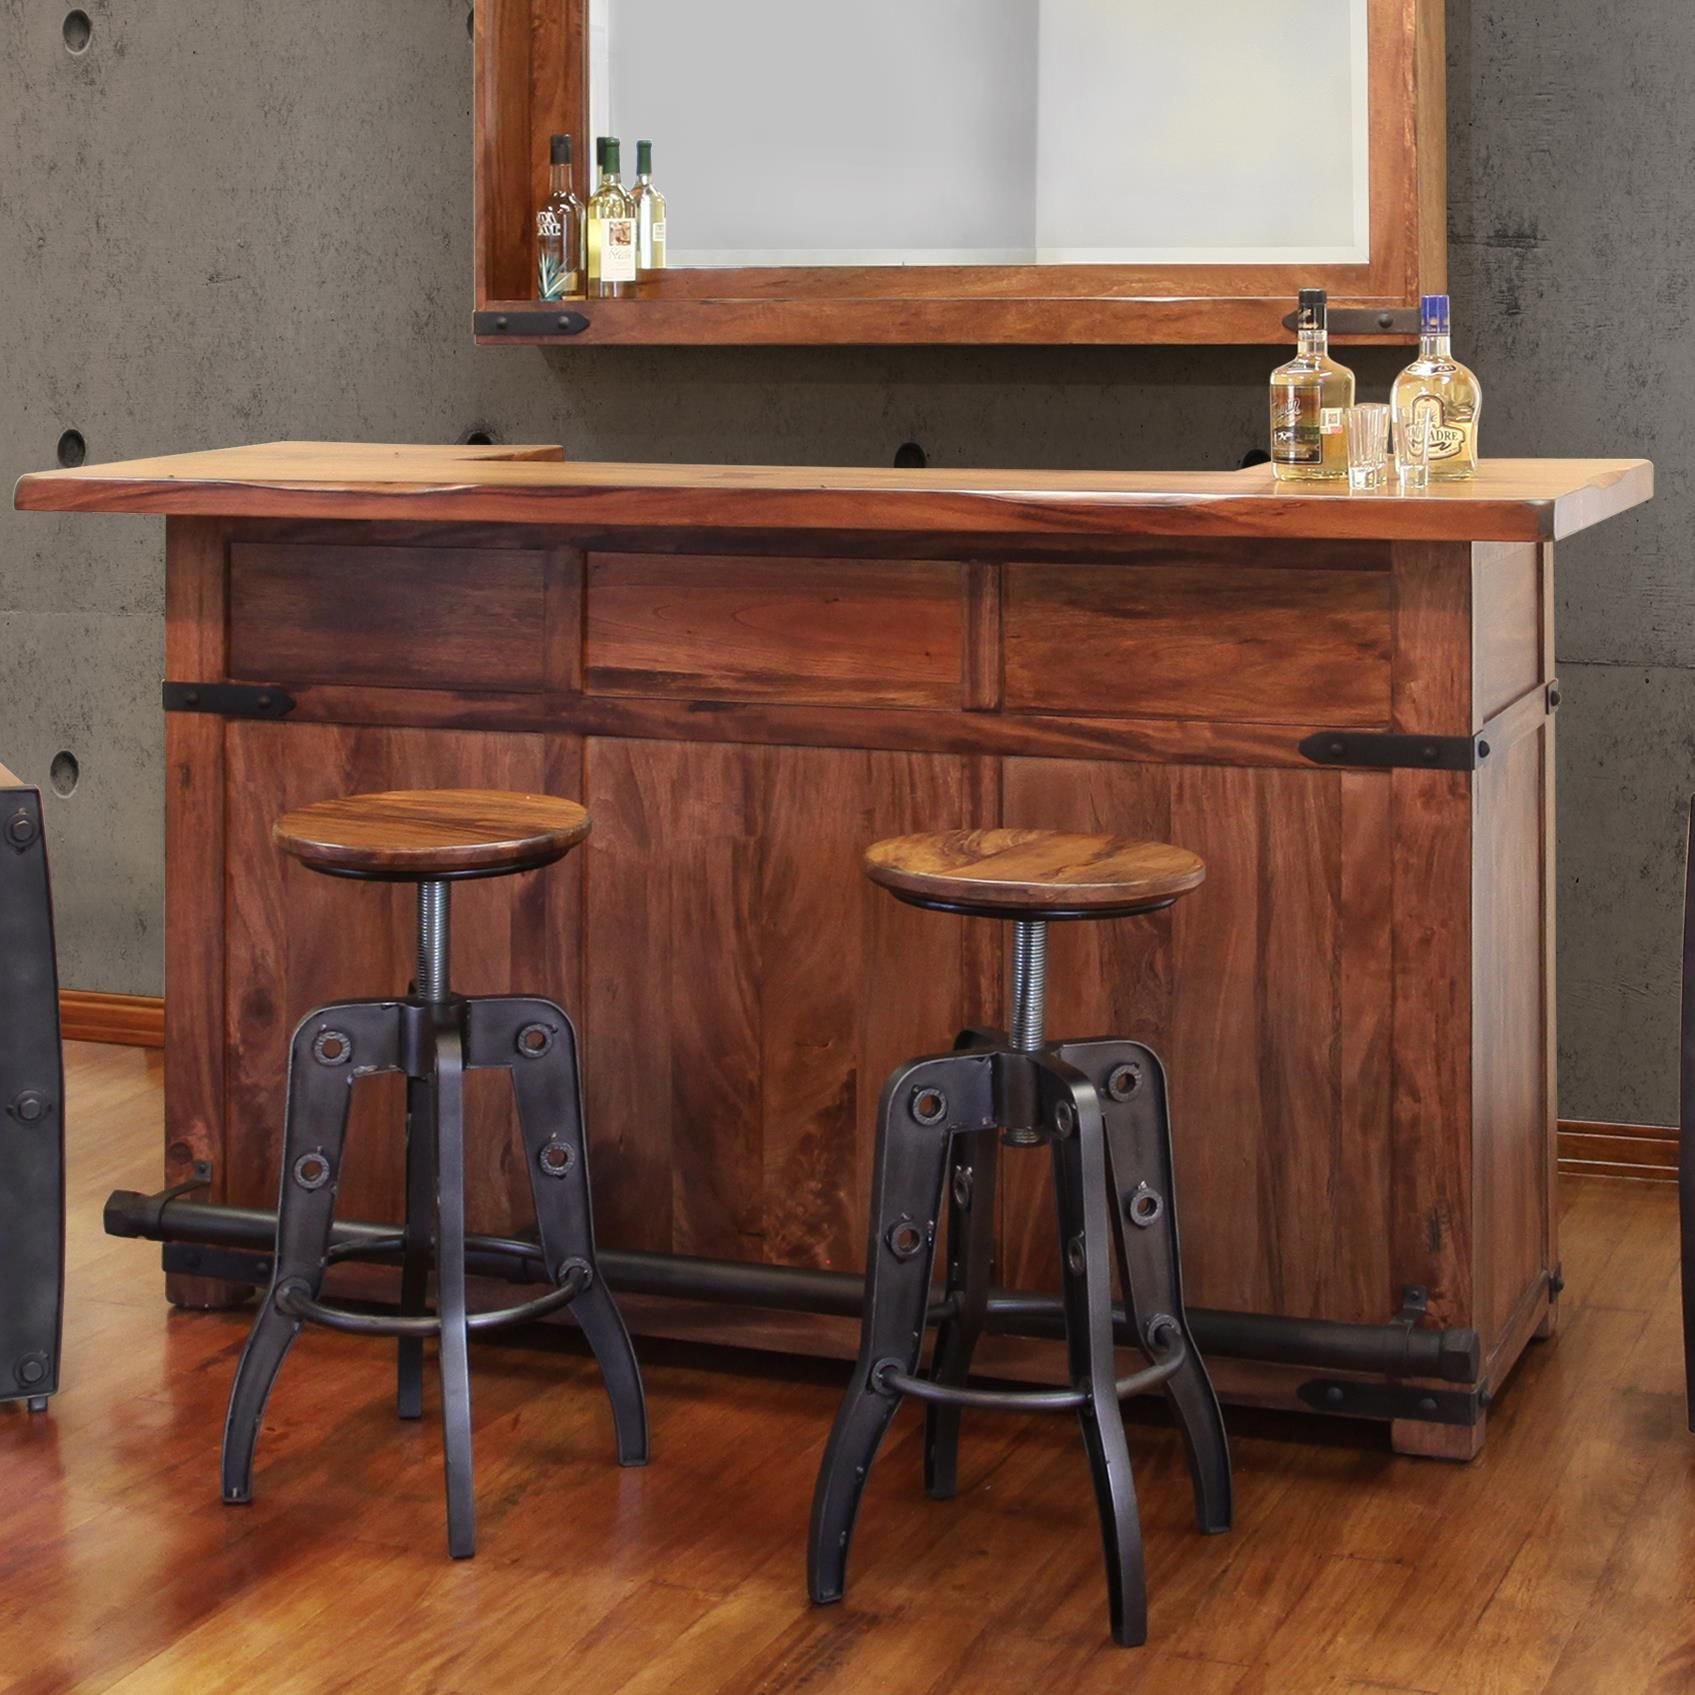 Parota Wood Bar With Iron Footrest By International Furniture Direct At Furniture And Appliancemart Furniture Direct Furniture Wood Bars